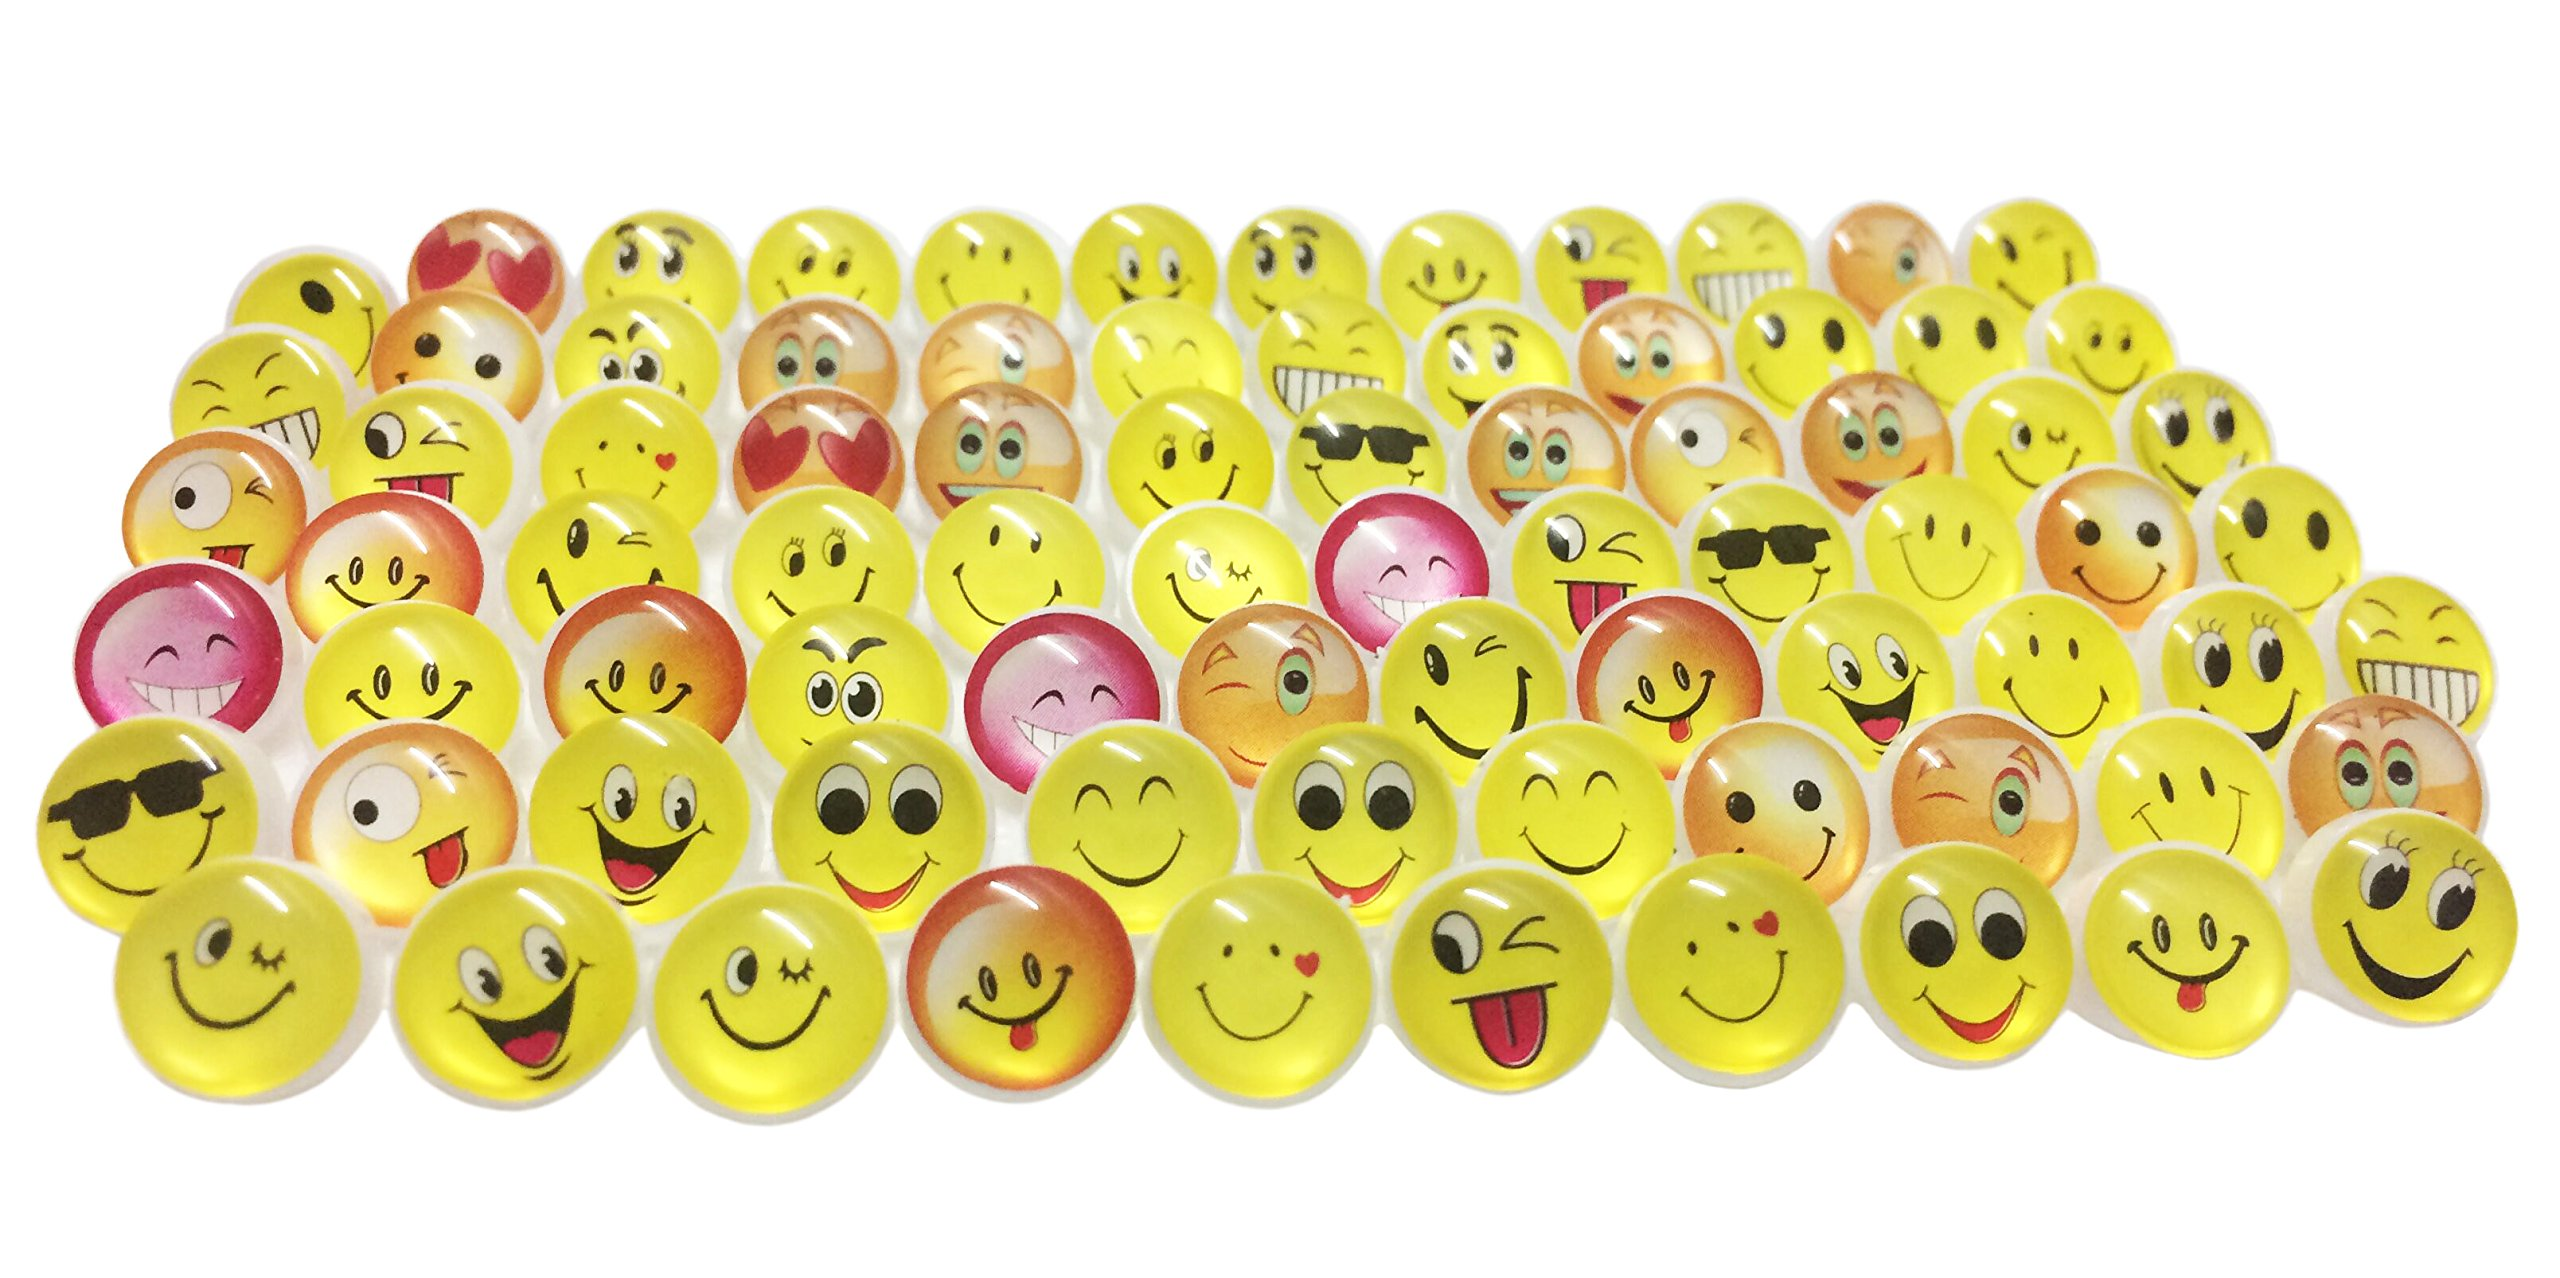 48 SMILEY FACE PINS yellow smile happy face lapel pin button BIRTHDAY PARTY NICE